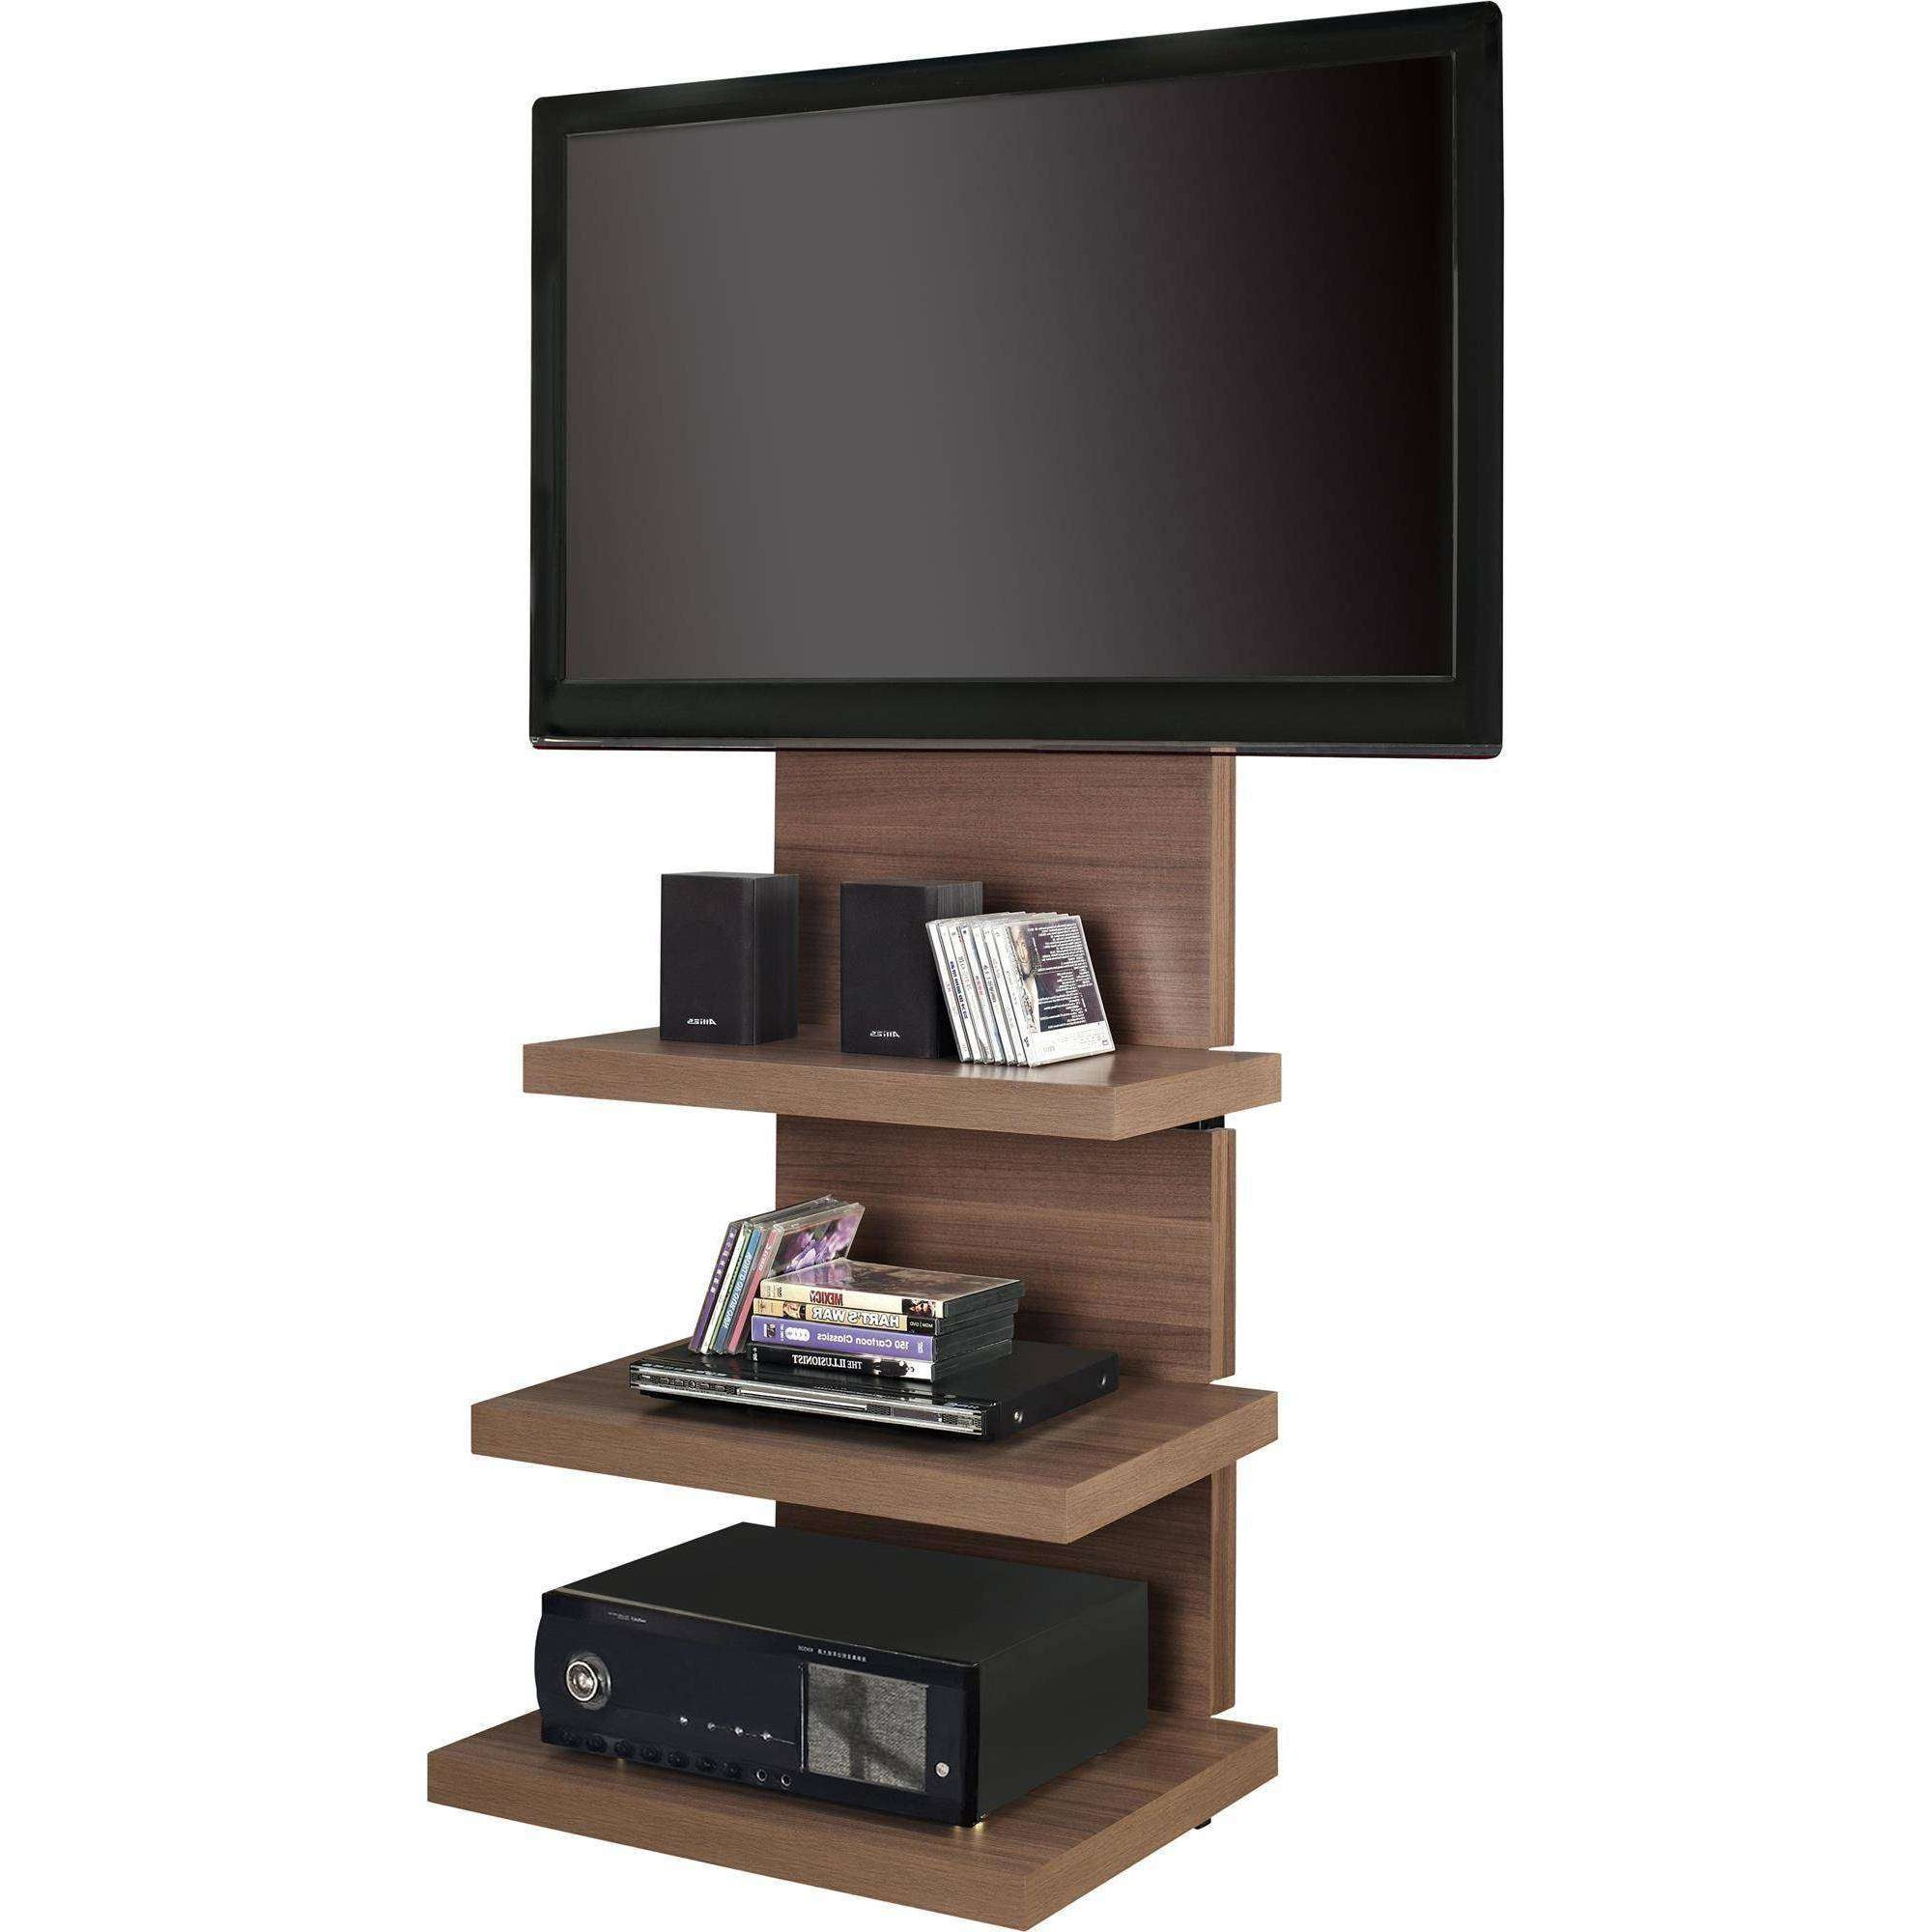 Best Tv Stand To Go Over Cable Box Tags : Tv Stands Over Cable Box Throughout Tv Stands Over Cable Box (View 12 of 15)